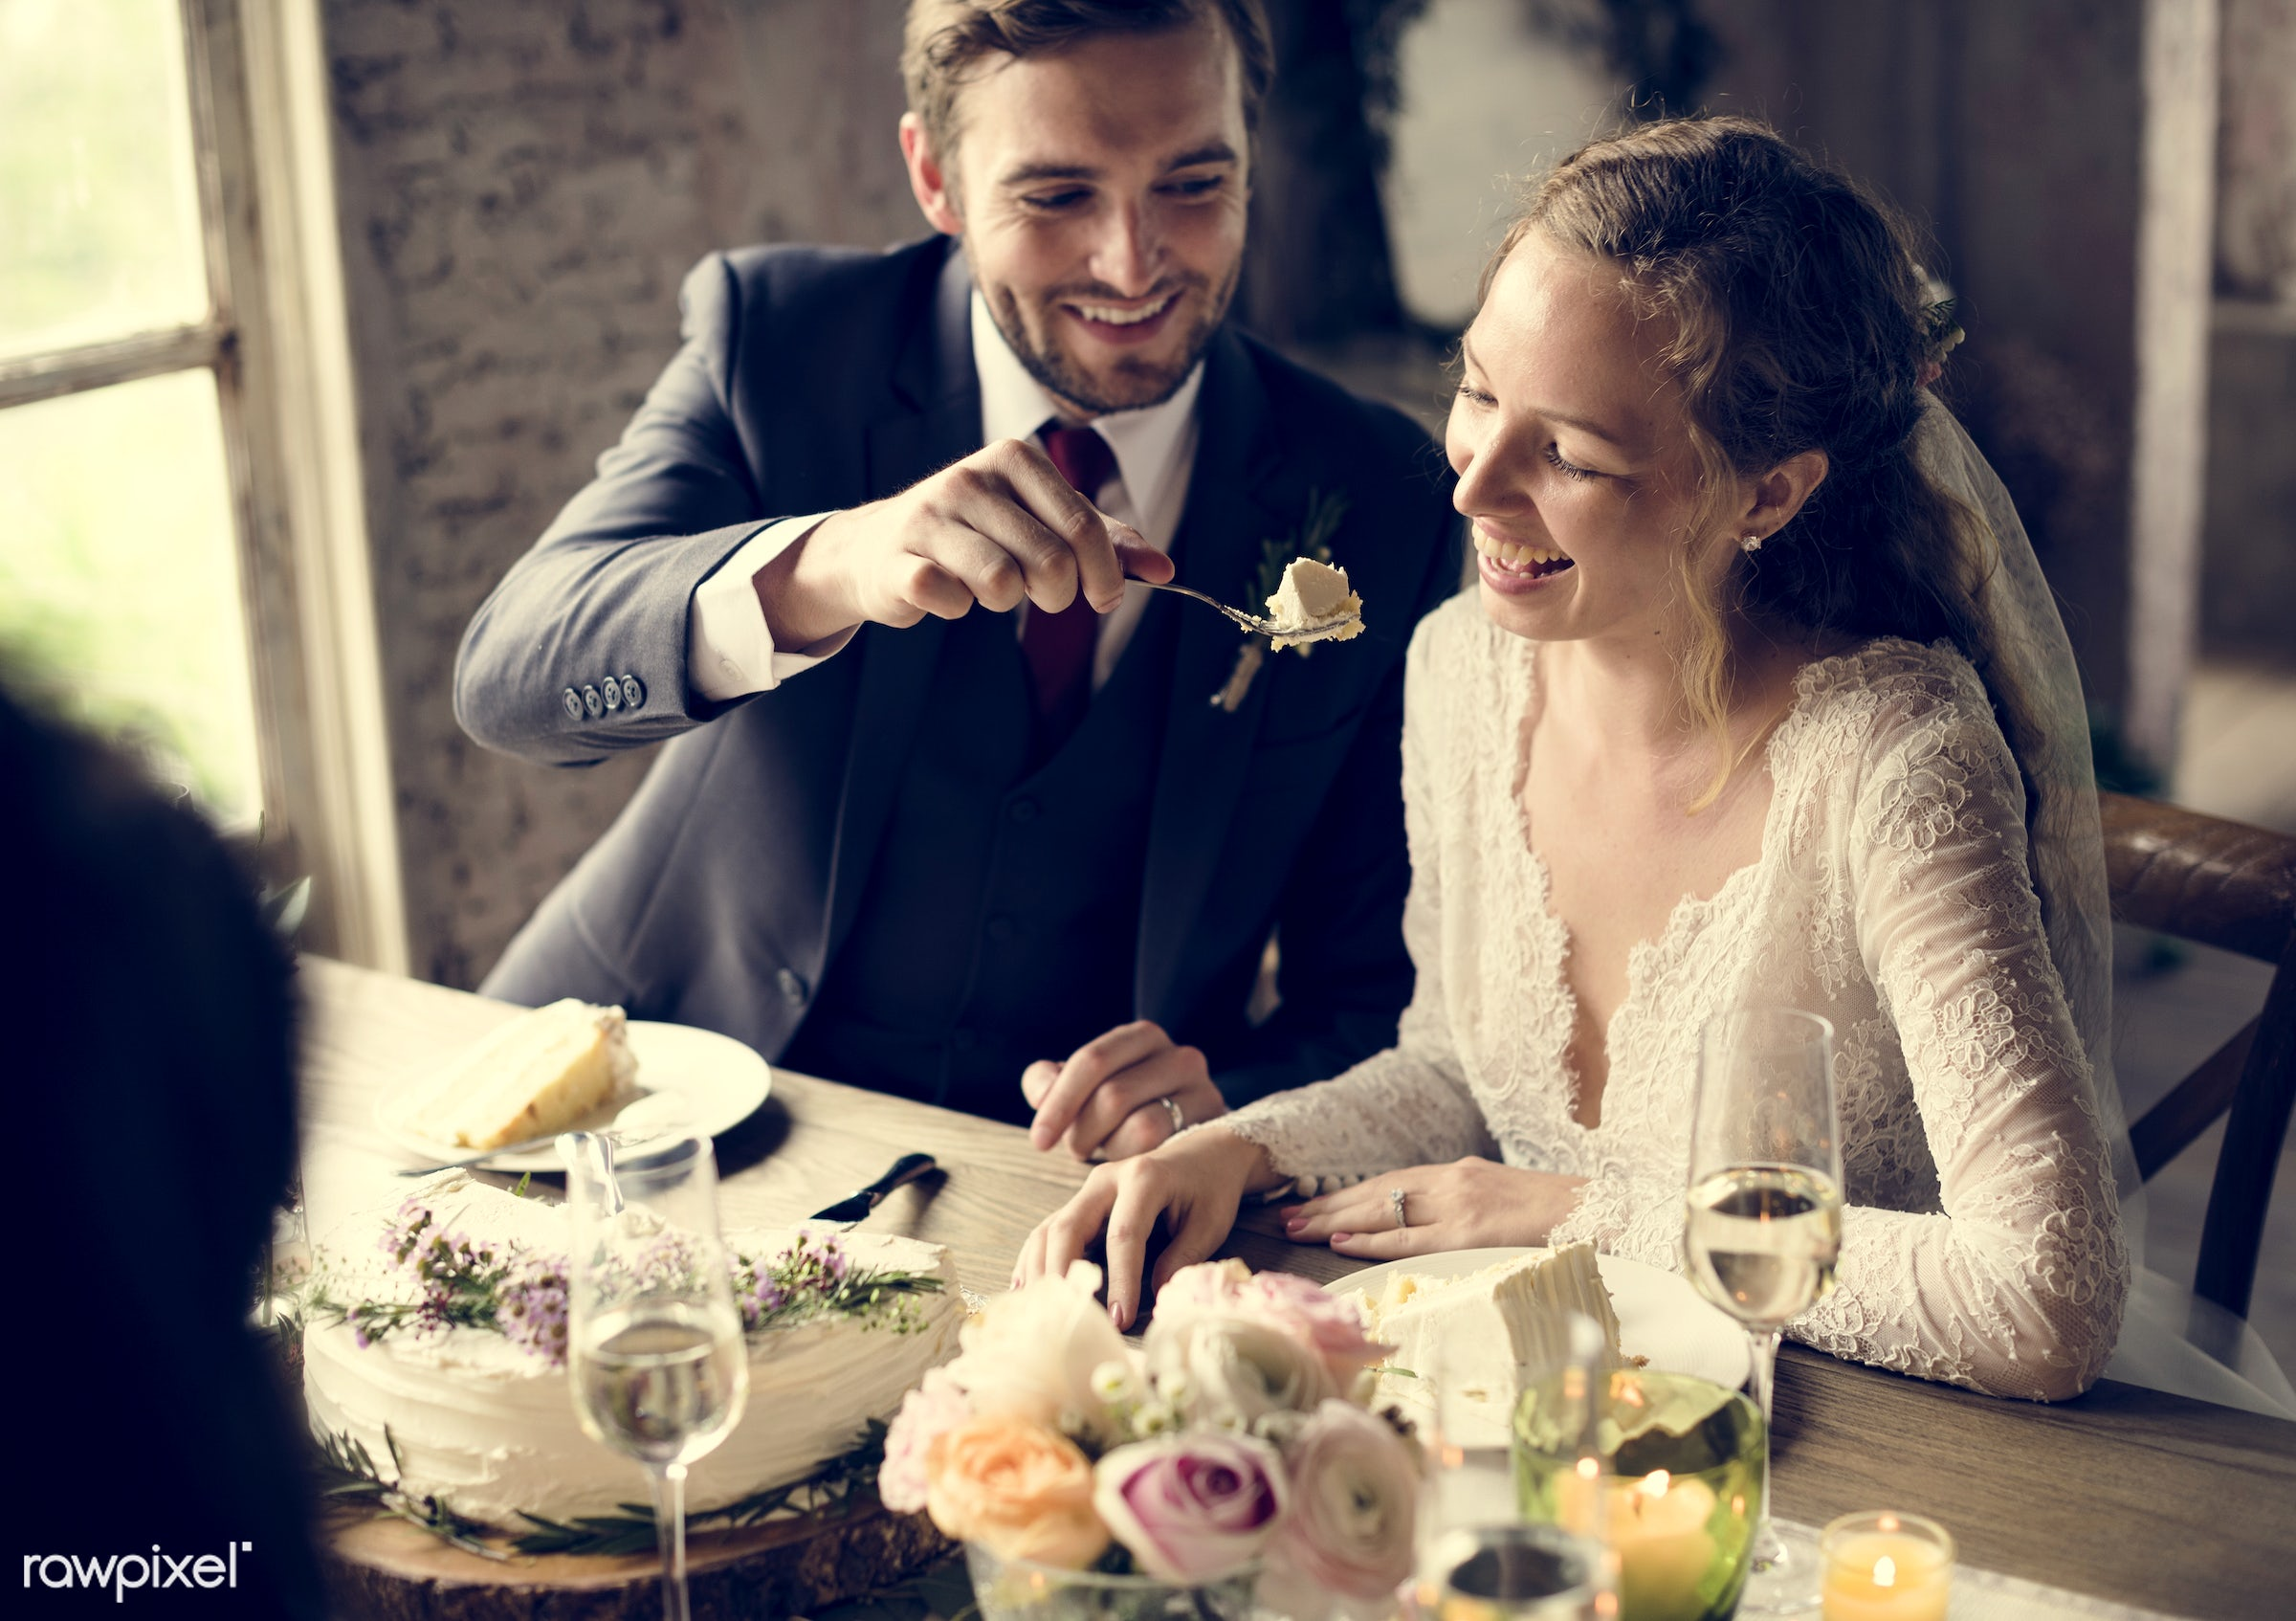 wedding, bonding, bride, cake, ceremony, cheerful, connection, couple, eating, event, feed, fondness, groom, happiness,...